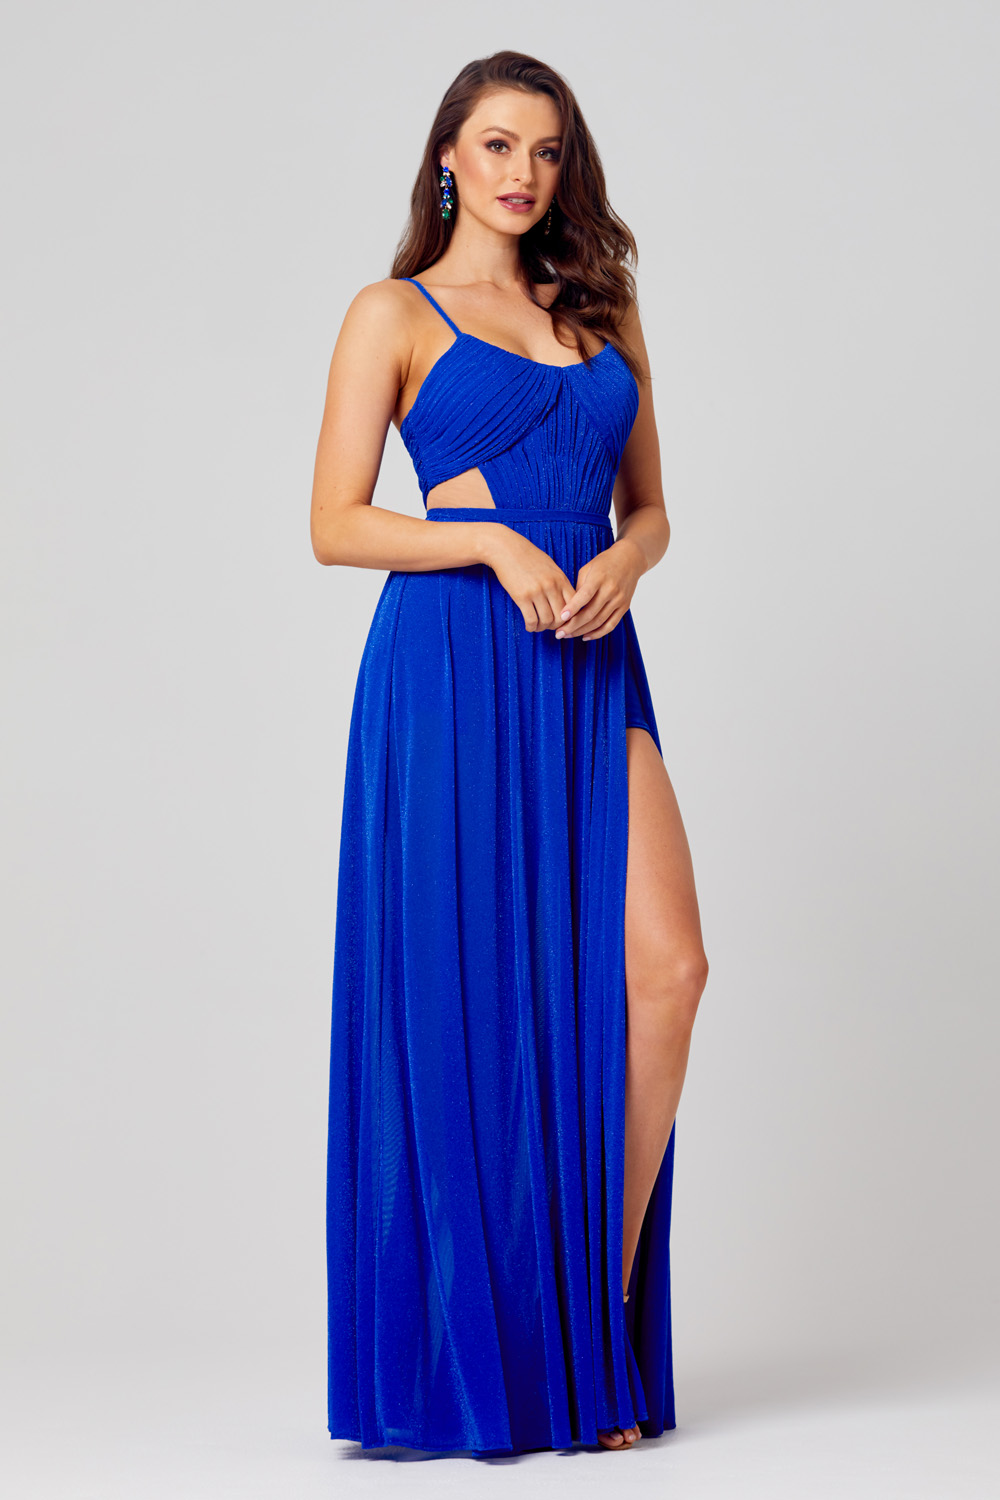 Lulu High Leg Formal Dress - PO845 side